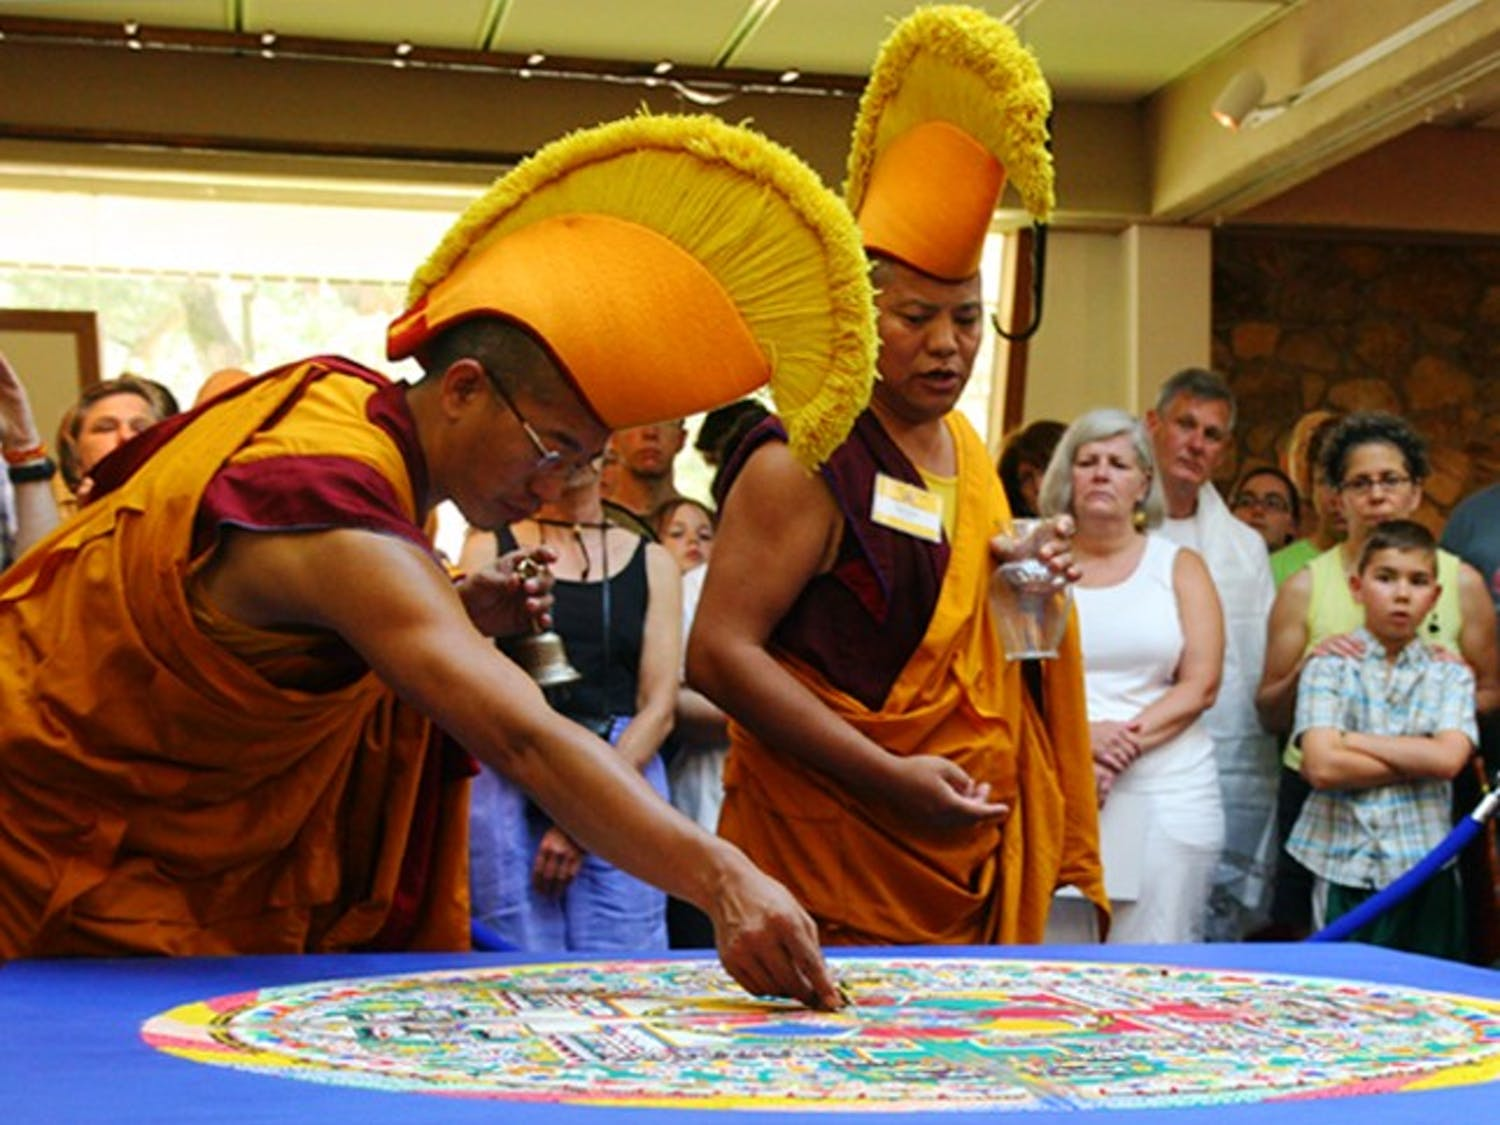 Tibetan monks from Drepung Gomang Monastery in South India deconstruct their Sacred Sand Mandala during the closing ceremony Monday.